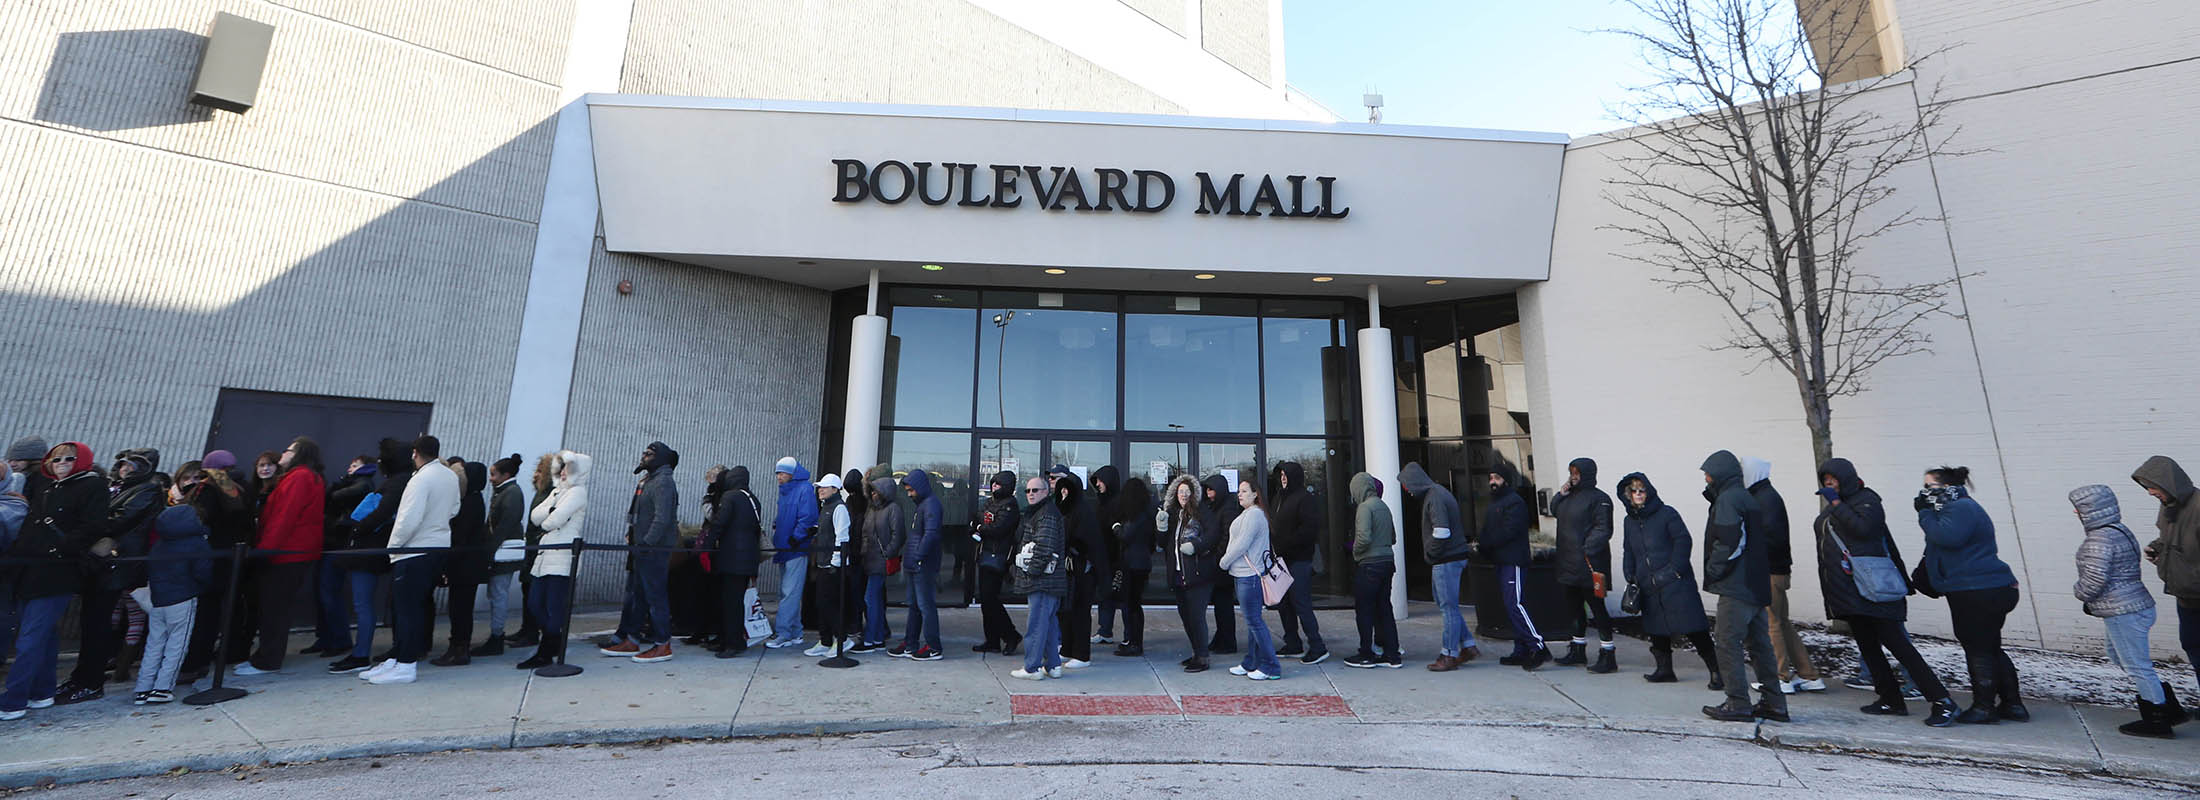 ba11eda4a89 Black Friday shopping started early at JC Penney at the Boulevard Mall on  Nov. 22